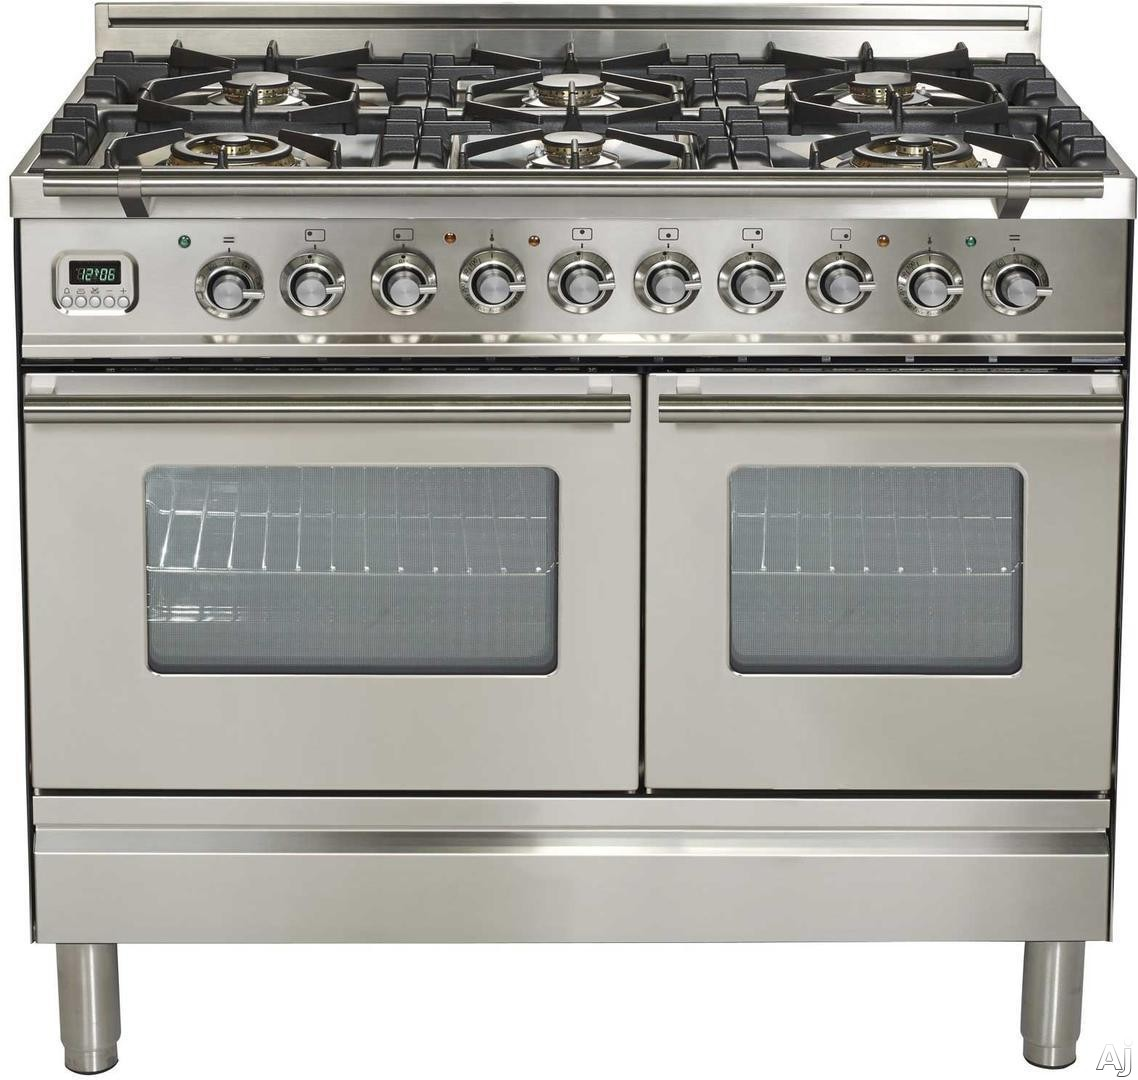 Ilve Proline Series UPDW1006DMPI 40 Inch Dual Fuel Double Oven Range With Digital Clock, Timer, Electronic Ignition, Warming Drawer, 6 Burners,Stainless Steel